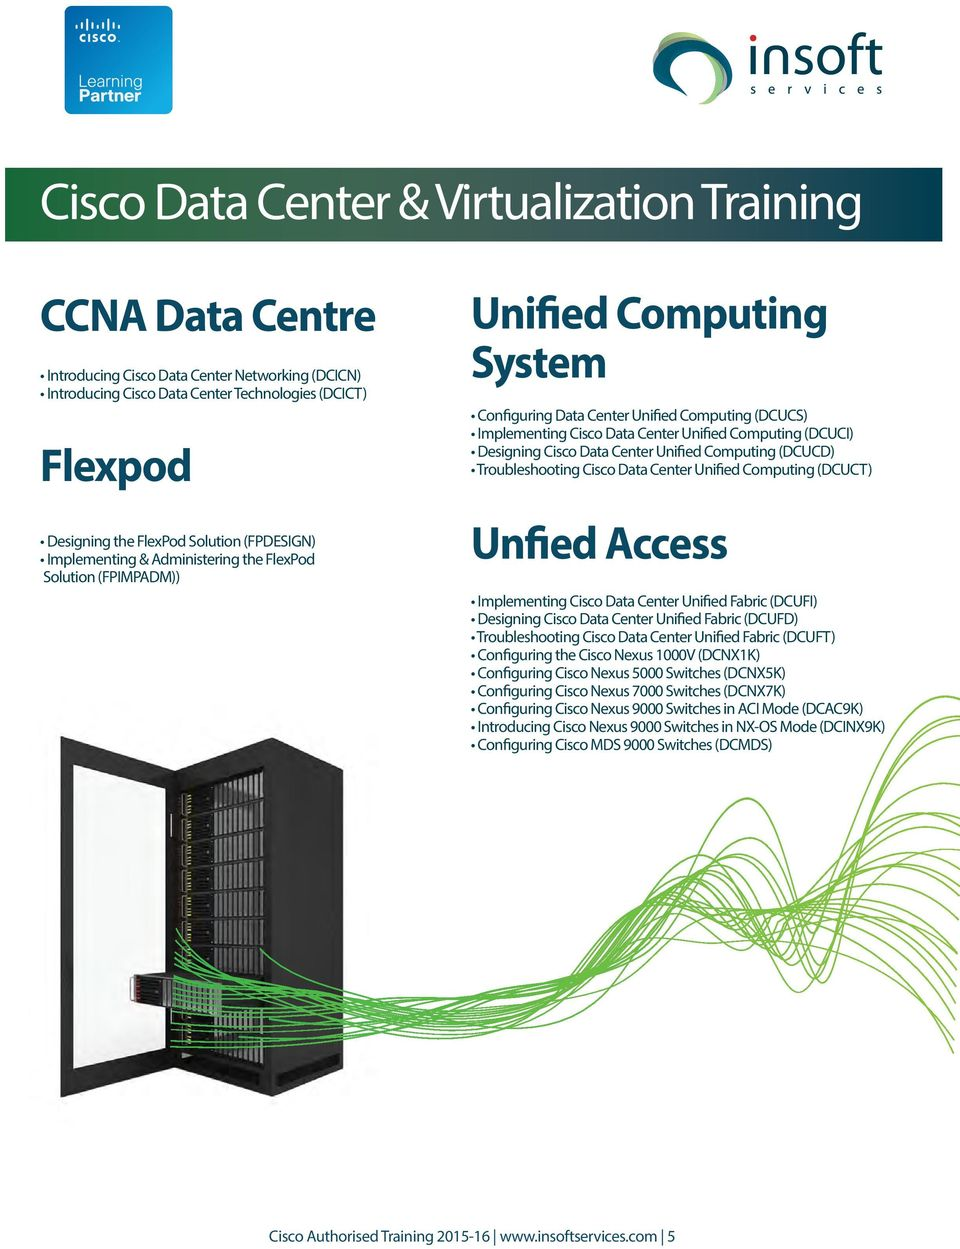 Unfied Access Cisco Authorised